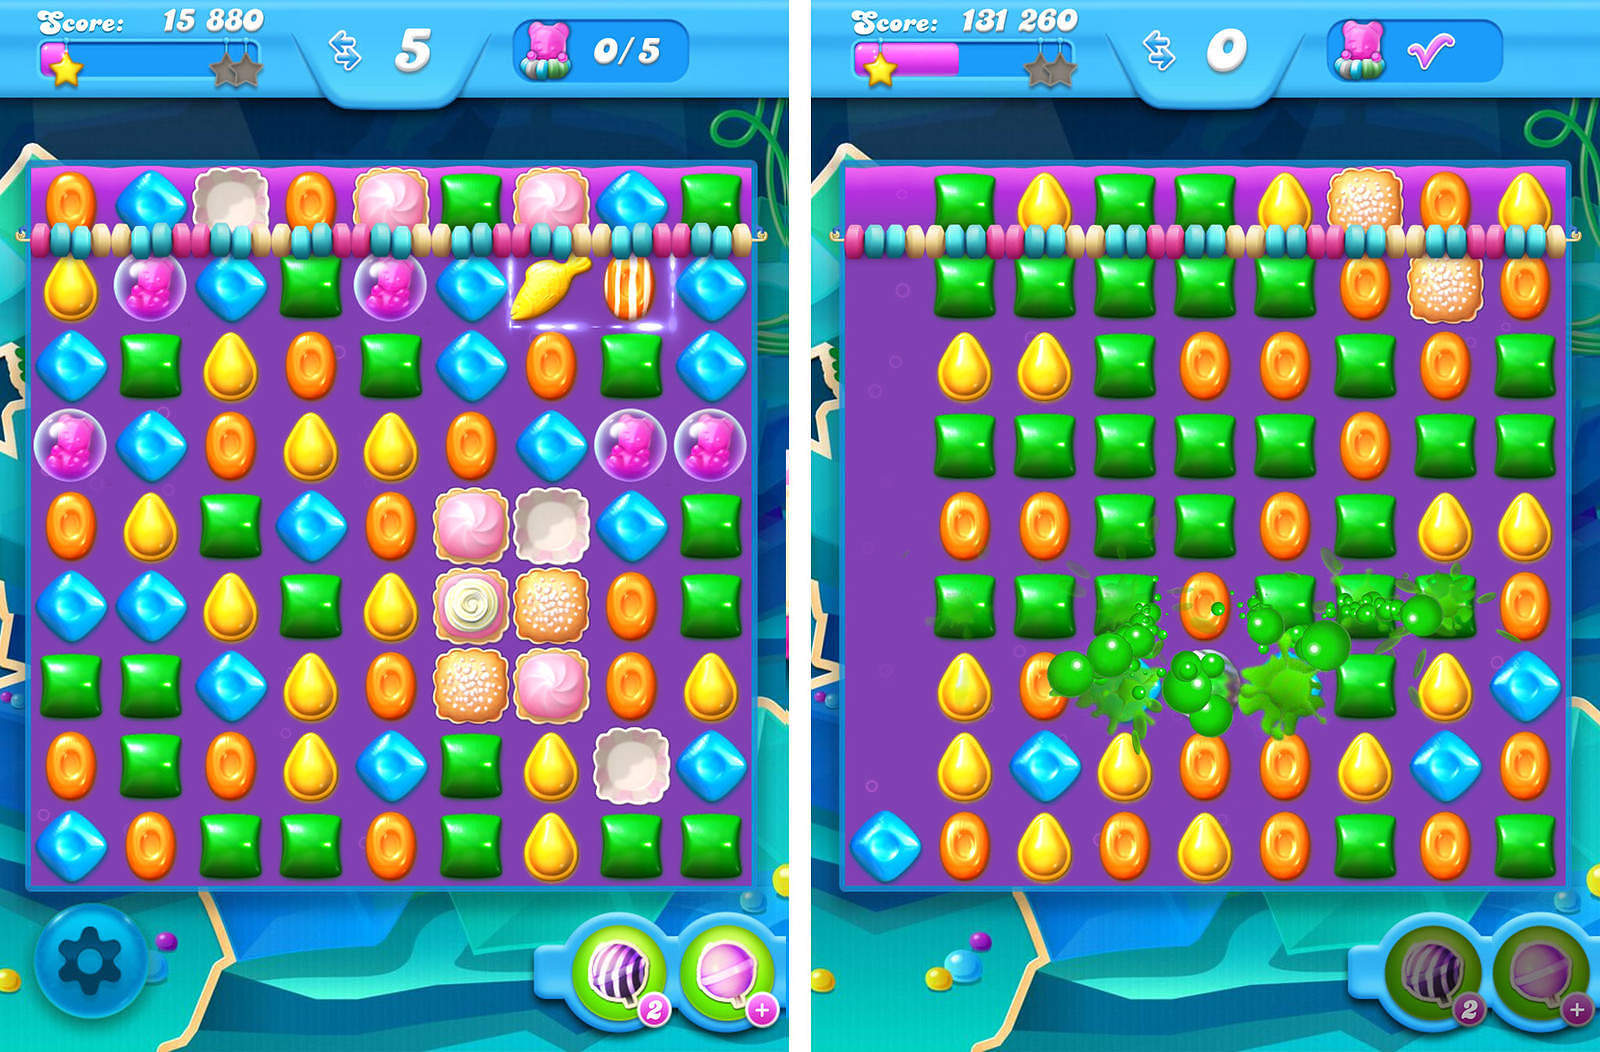 Candy Crush Soda Livello 60